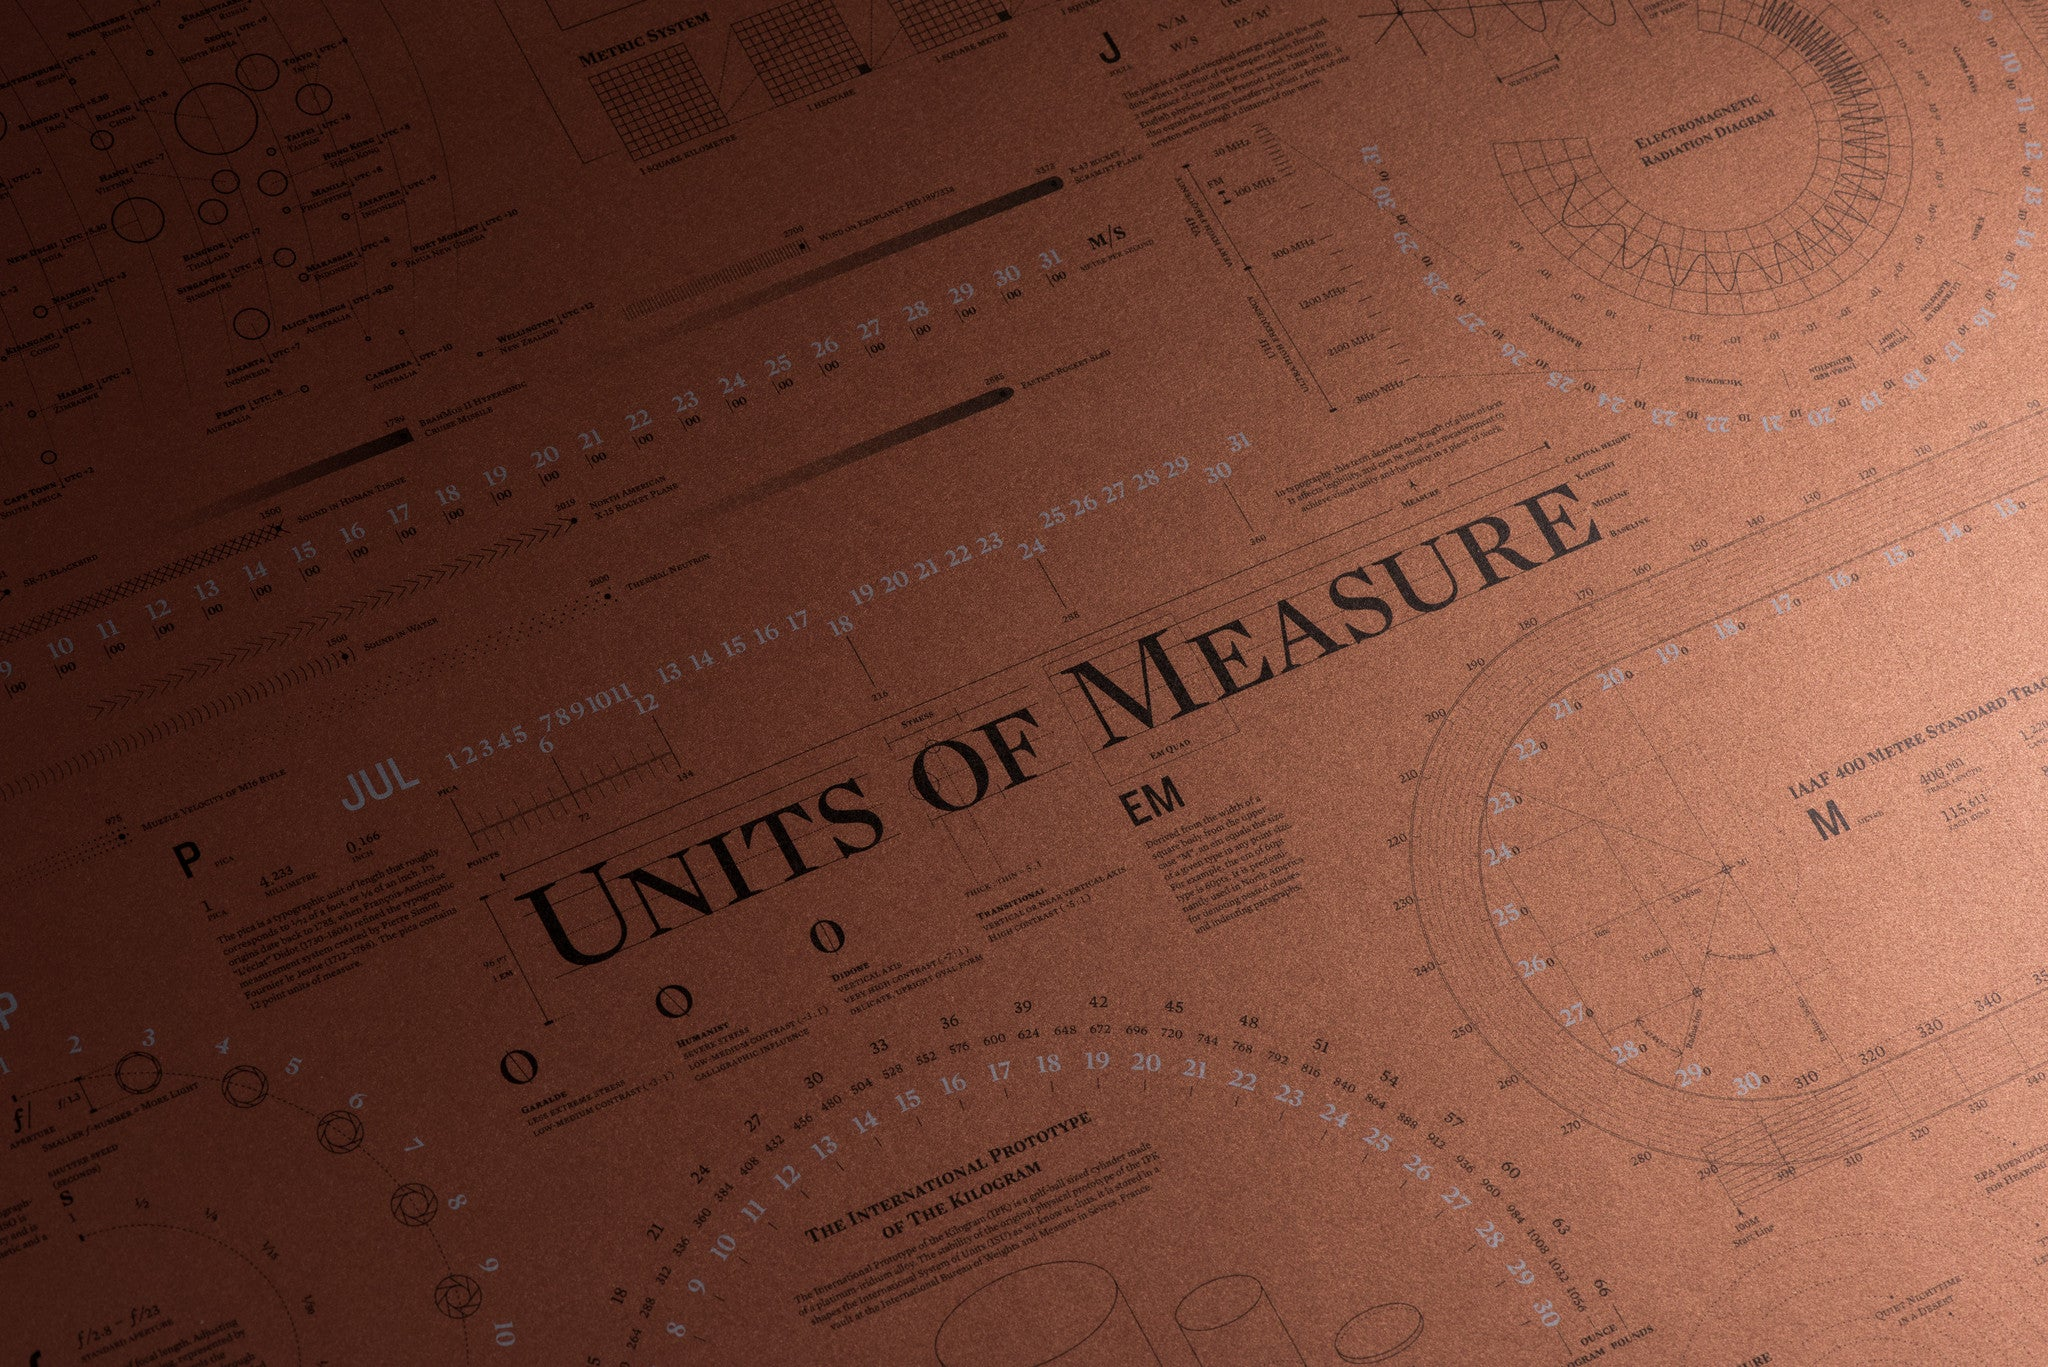 Units of Measure Calendar Poster (Third Edition)